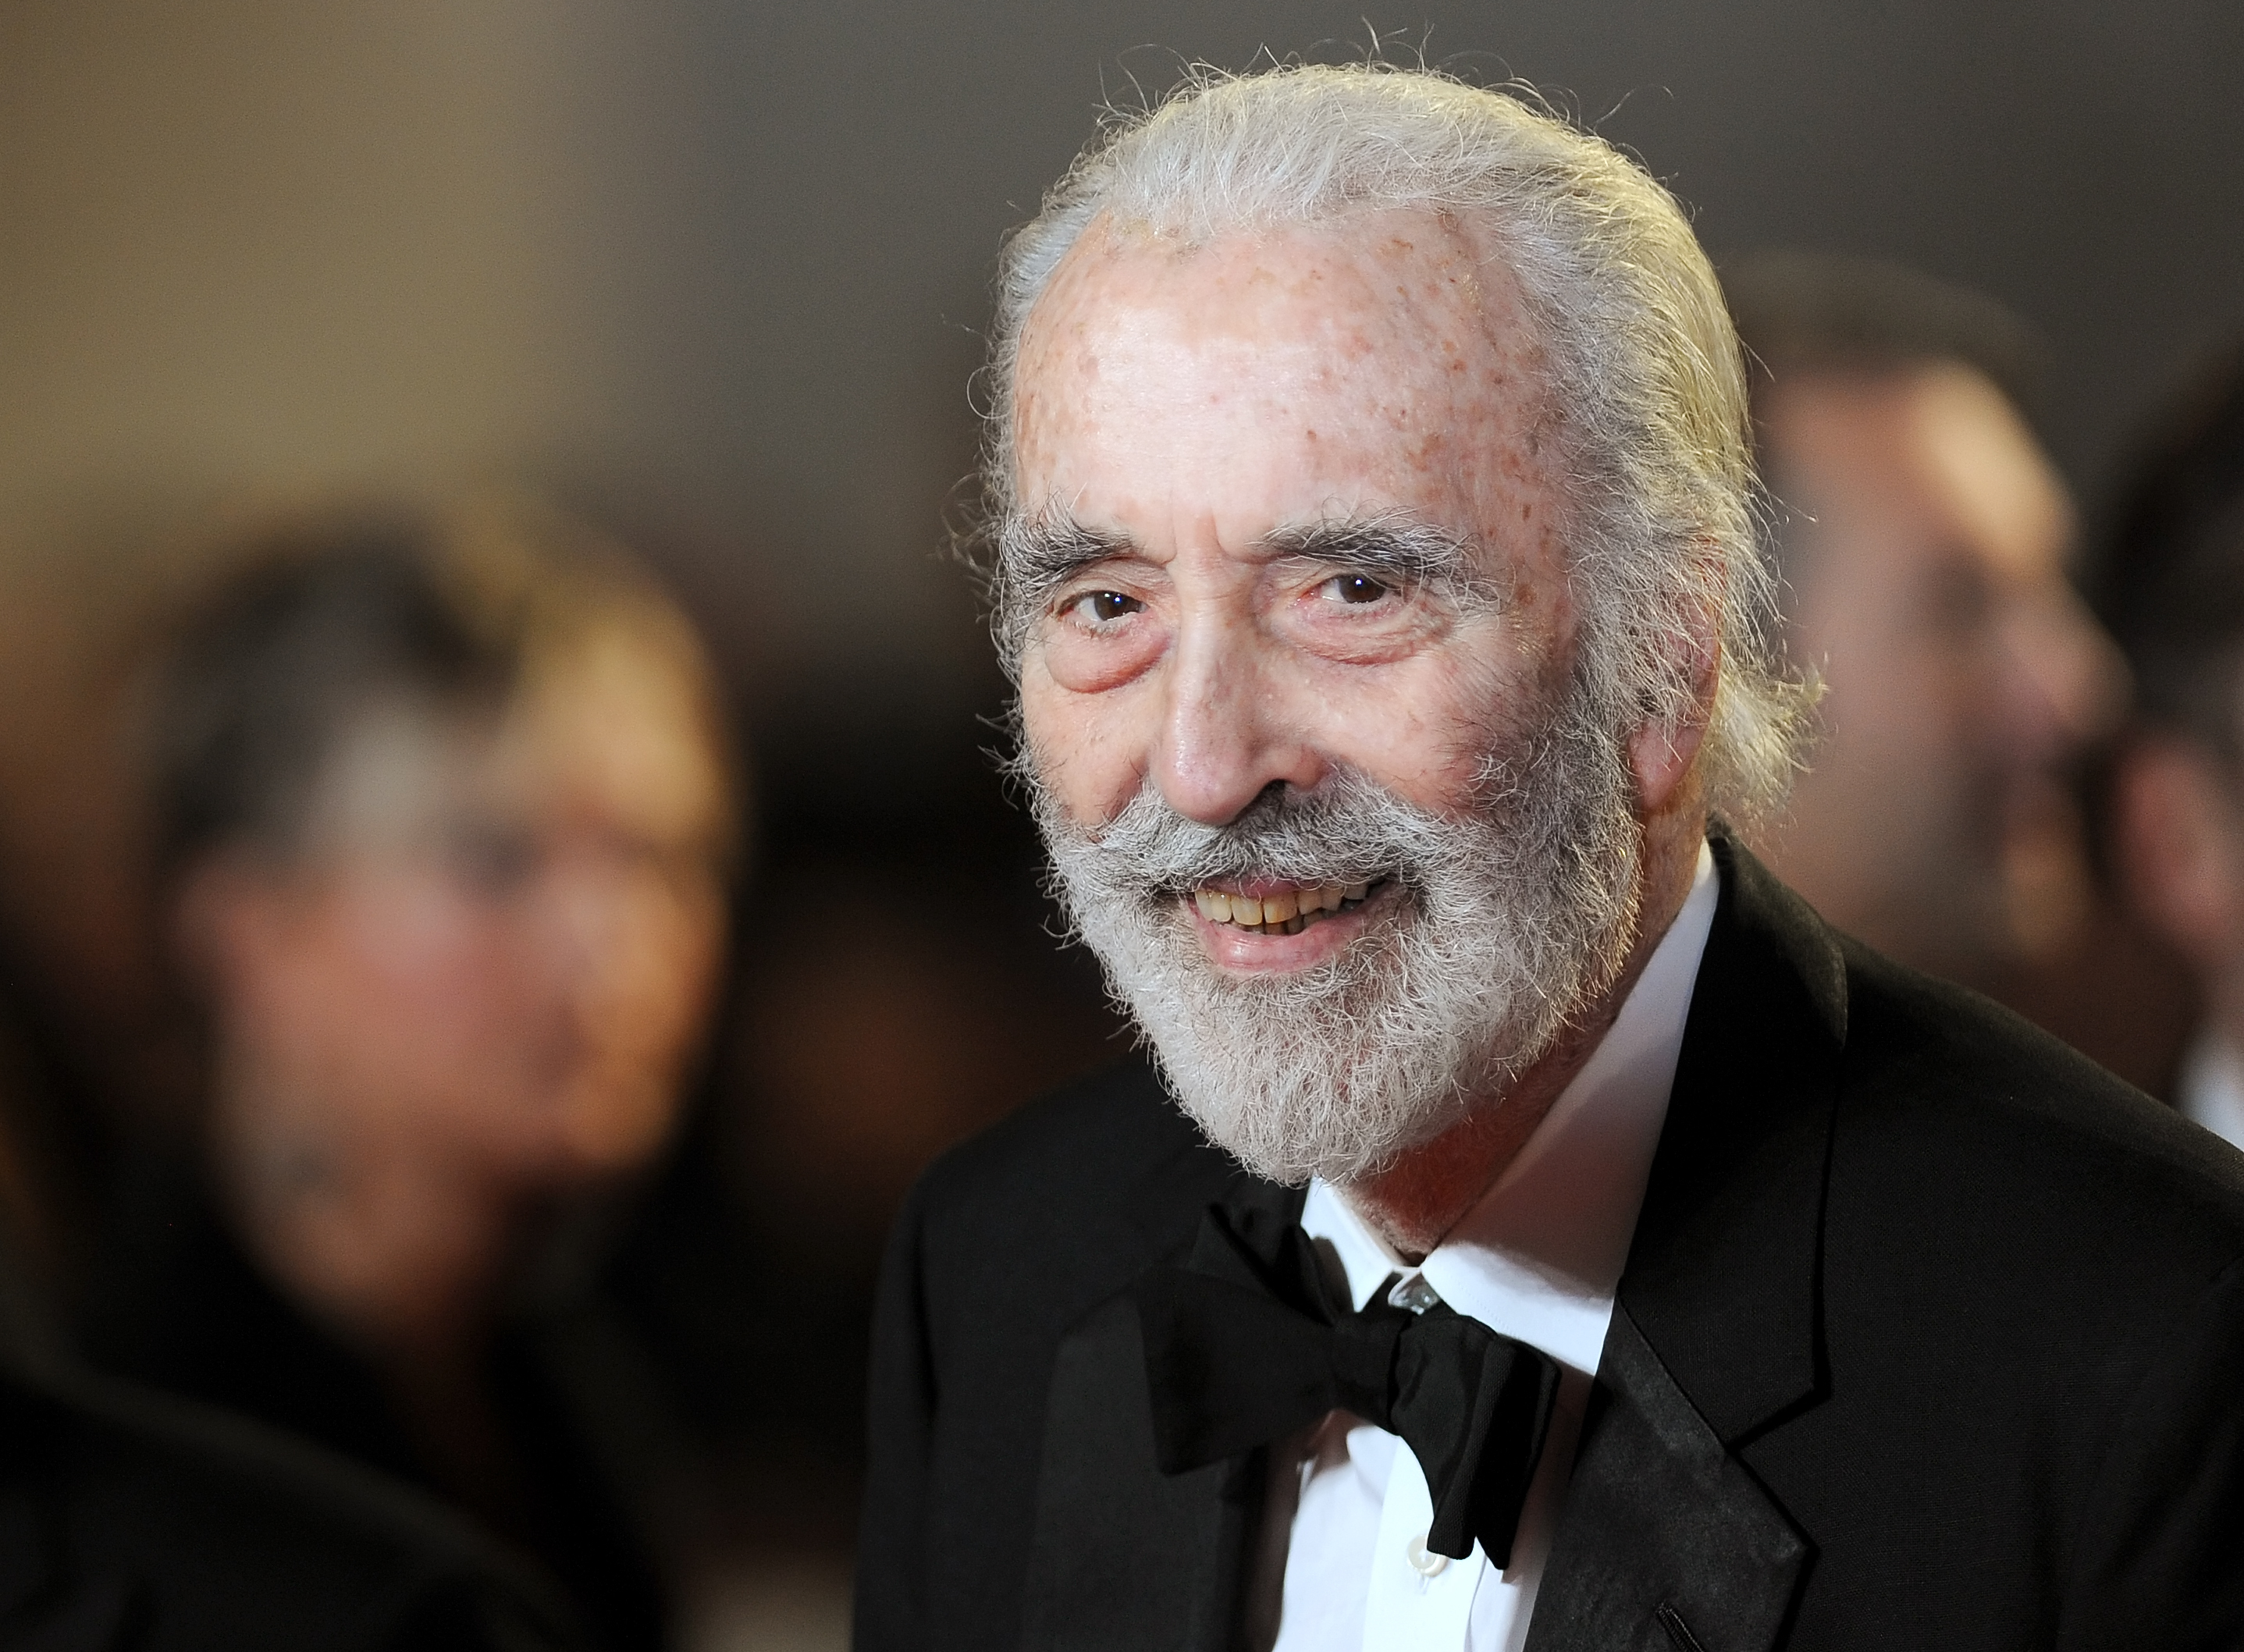 Sir Christopher Lee has died aged 93.